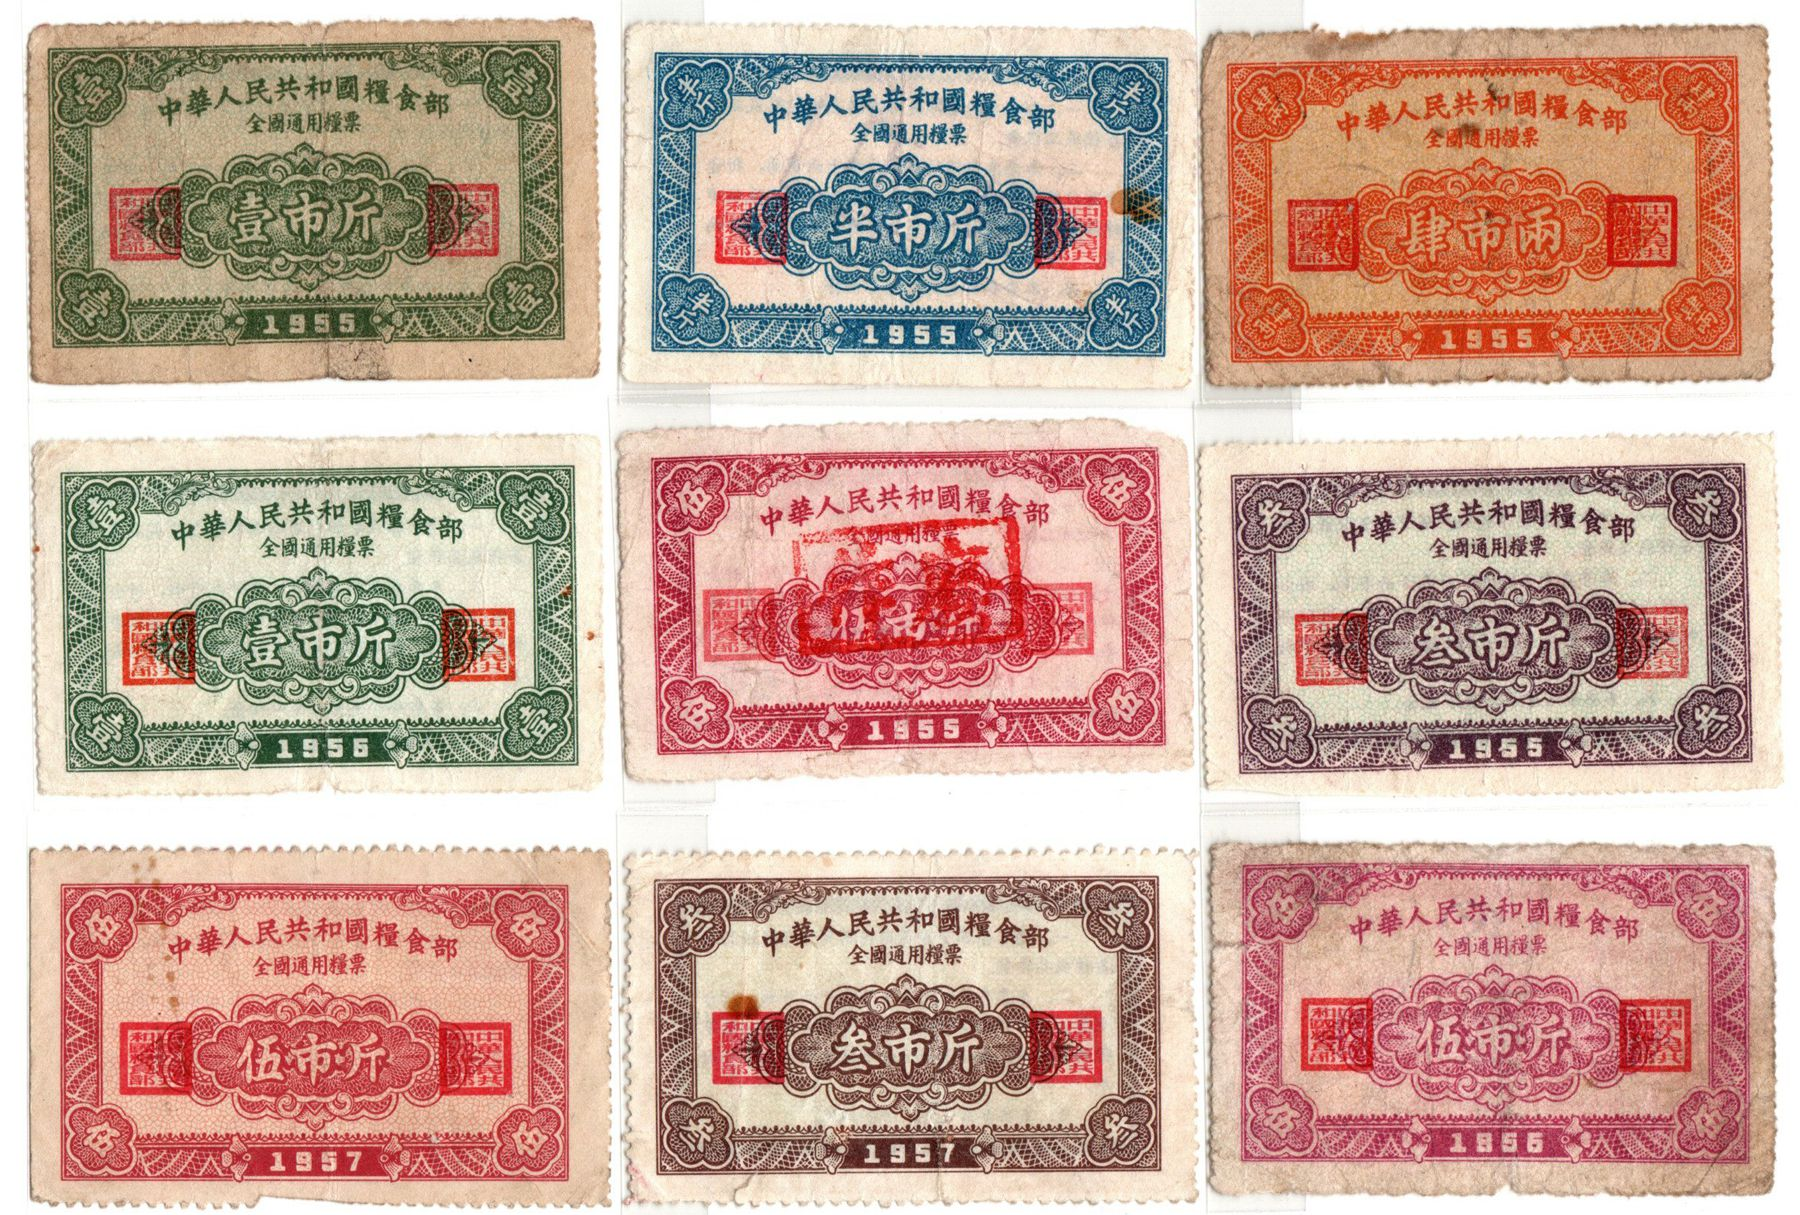 H0901, Rare First Set China National Food Ration Coupons, 9 pcs, 1955-57